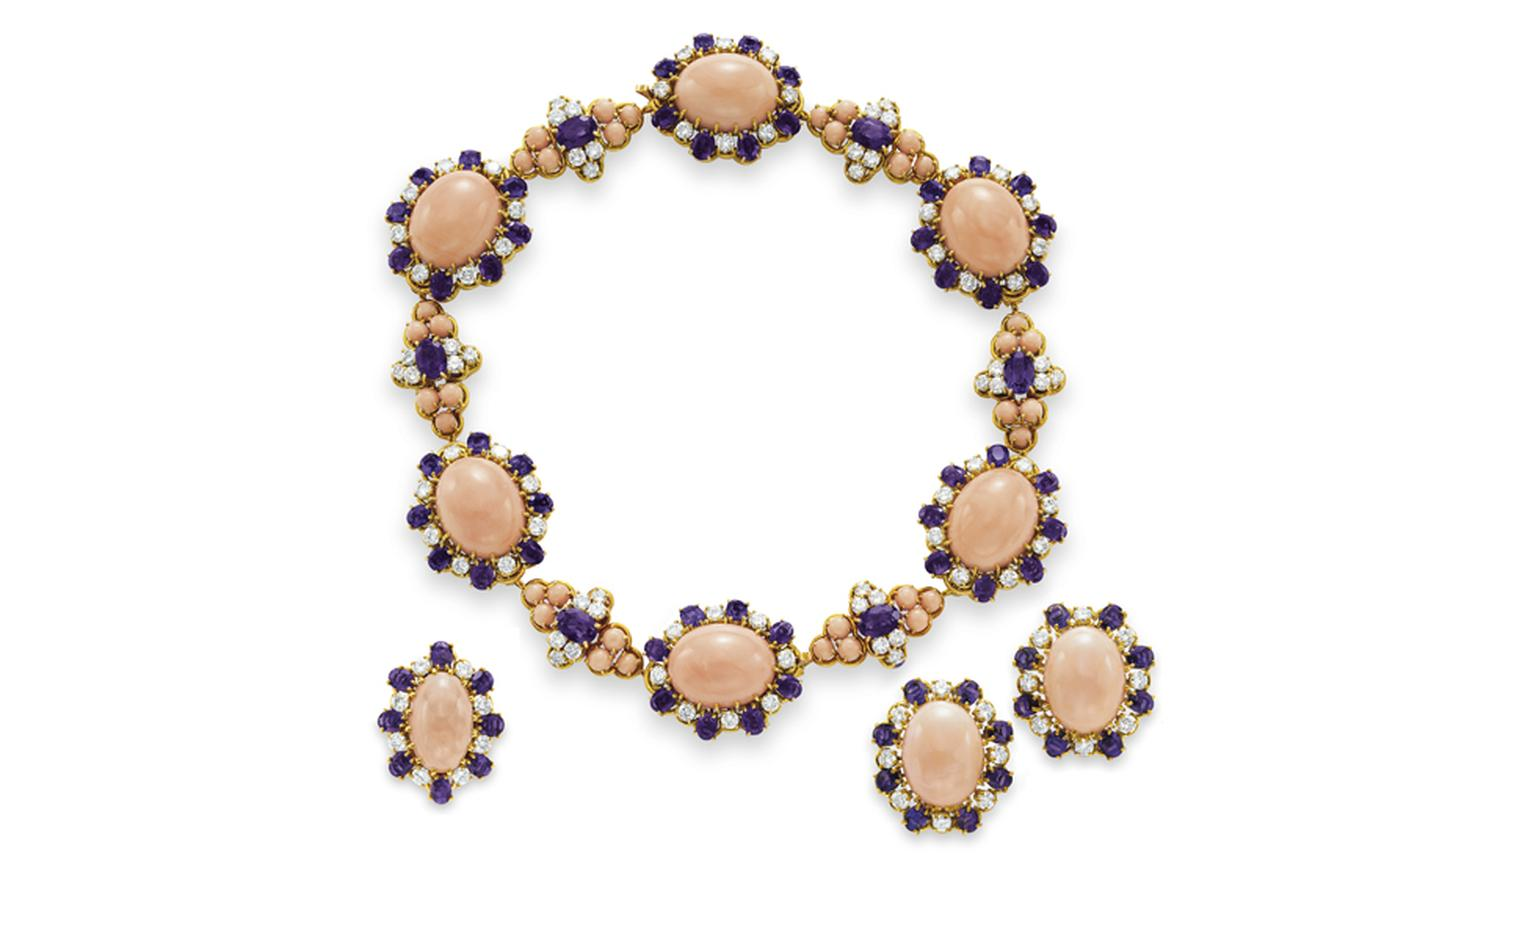 Van Cleef & Arpels. Dodecanese Coral, Amethyst, Diamond and Yellow Gold Choker, Ear clips and Ring (1970). © Christie's Images 2011. POA.